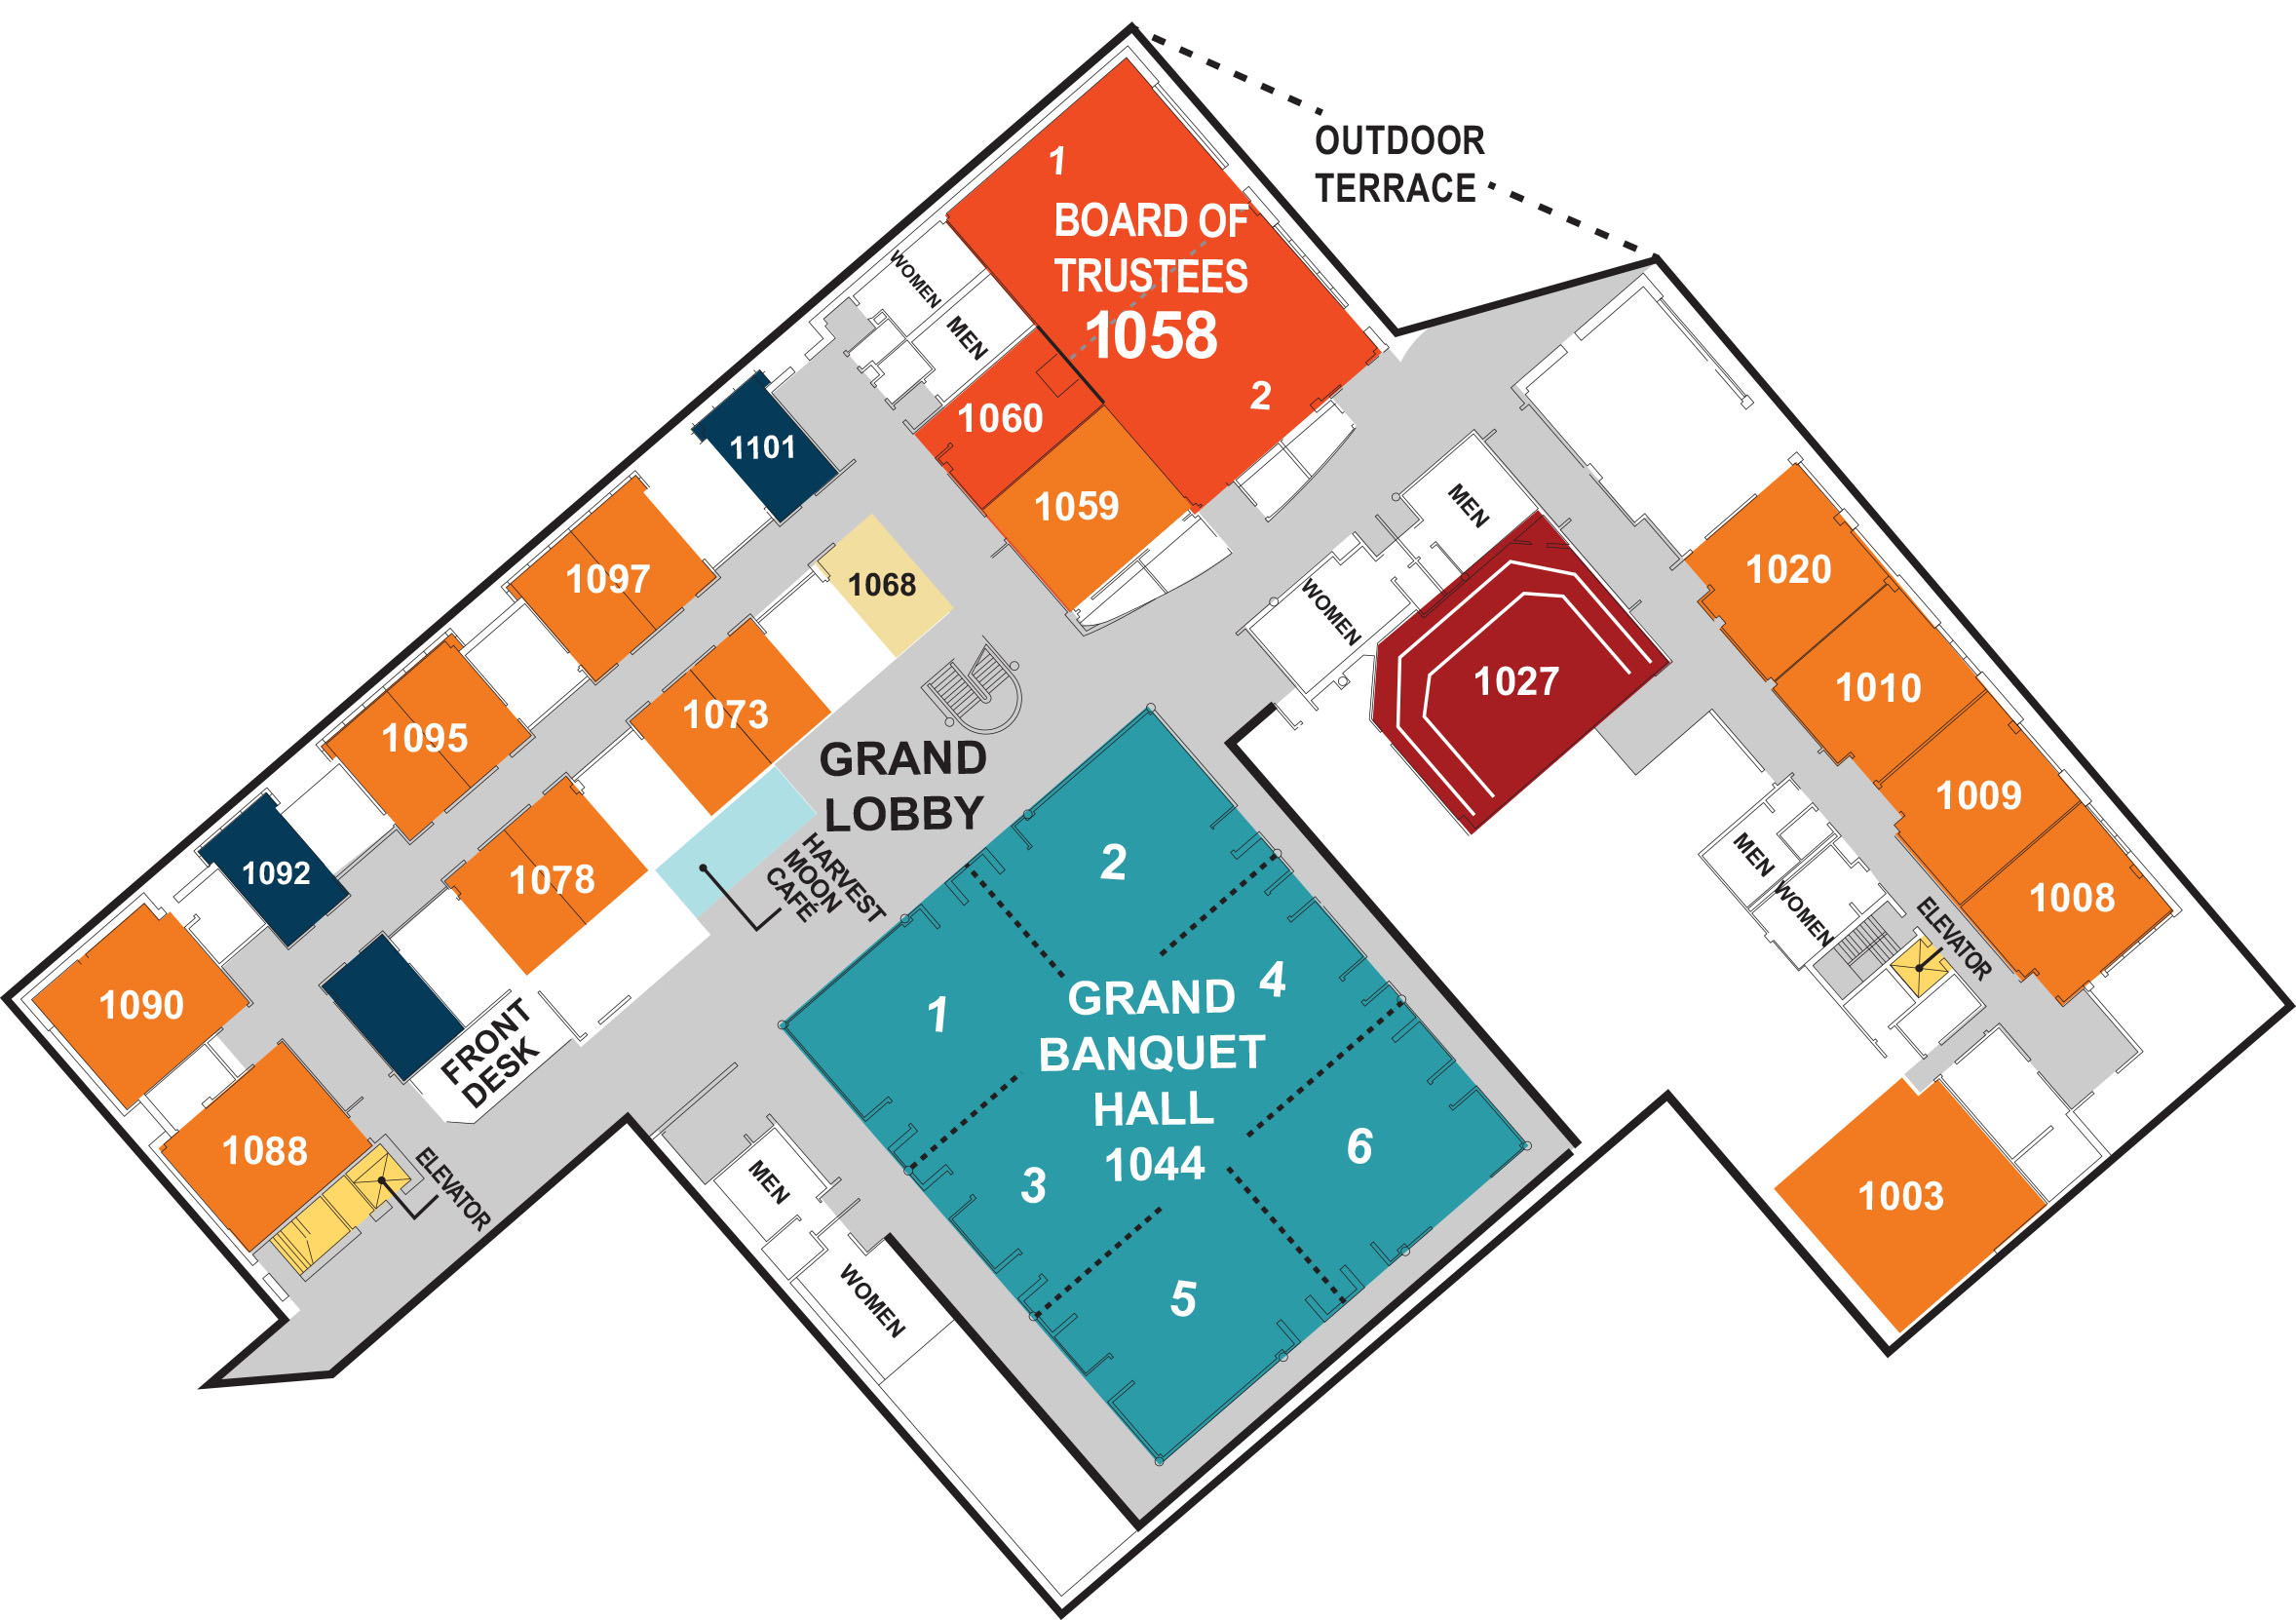 Floor plan of the meeting rooms available